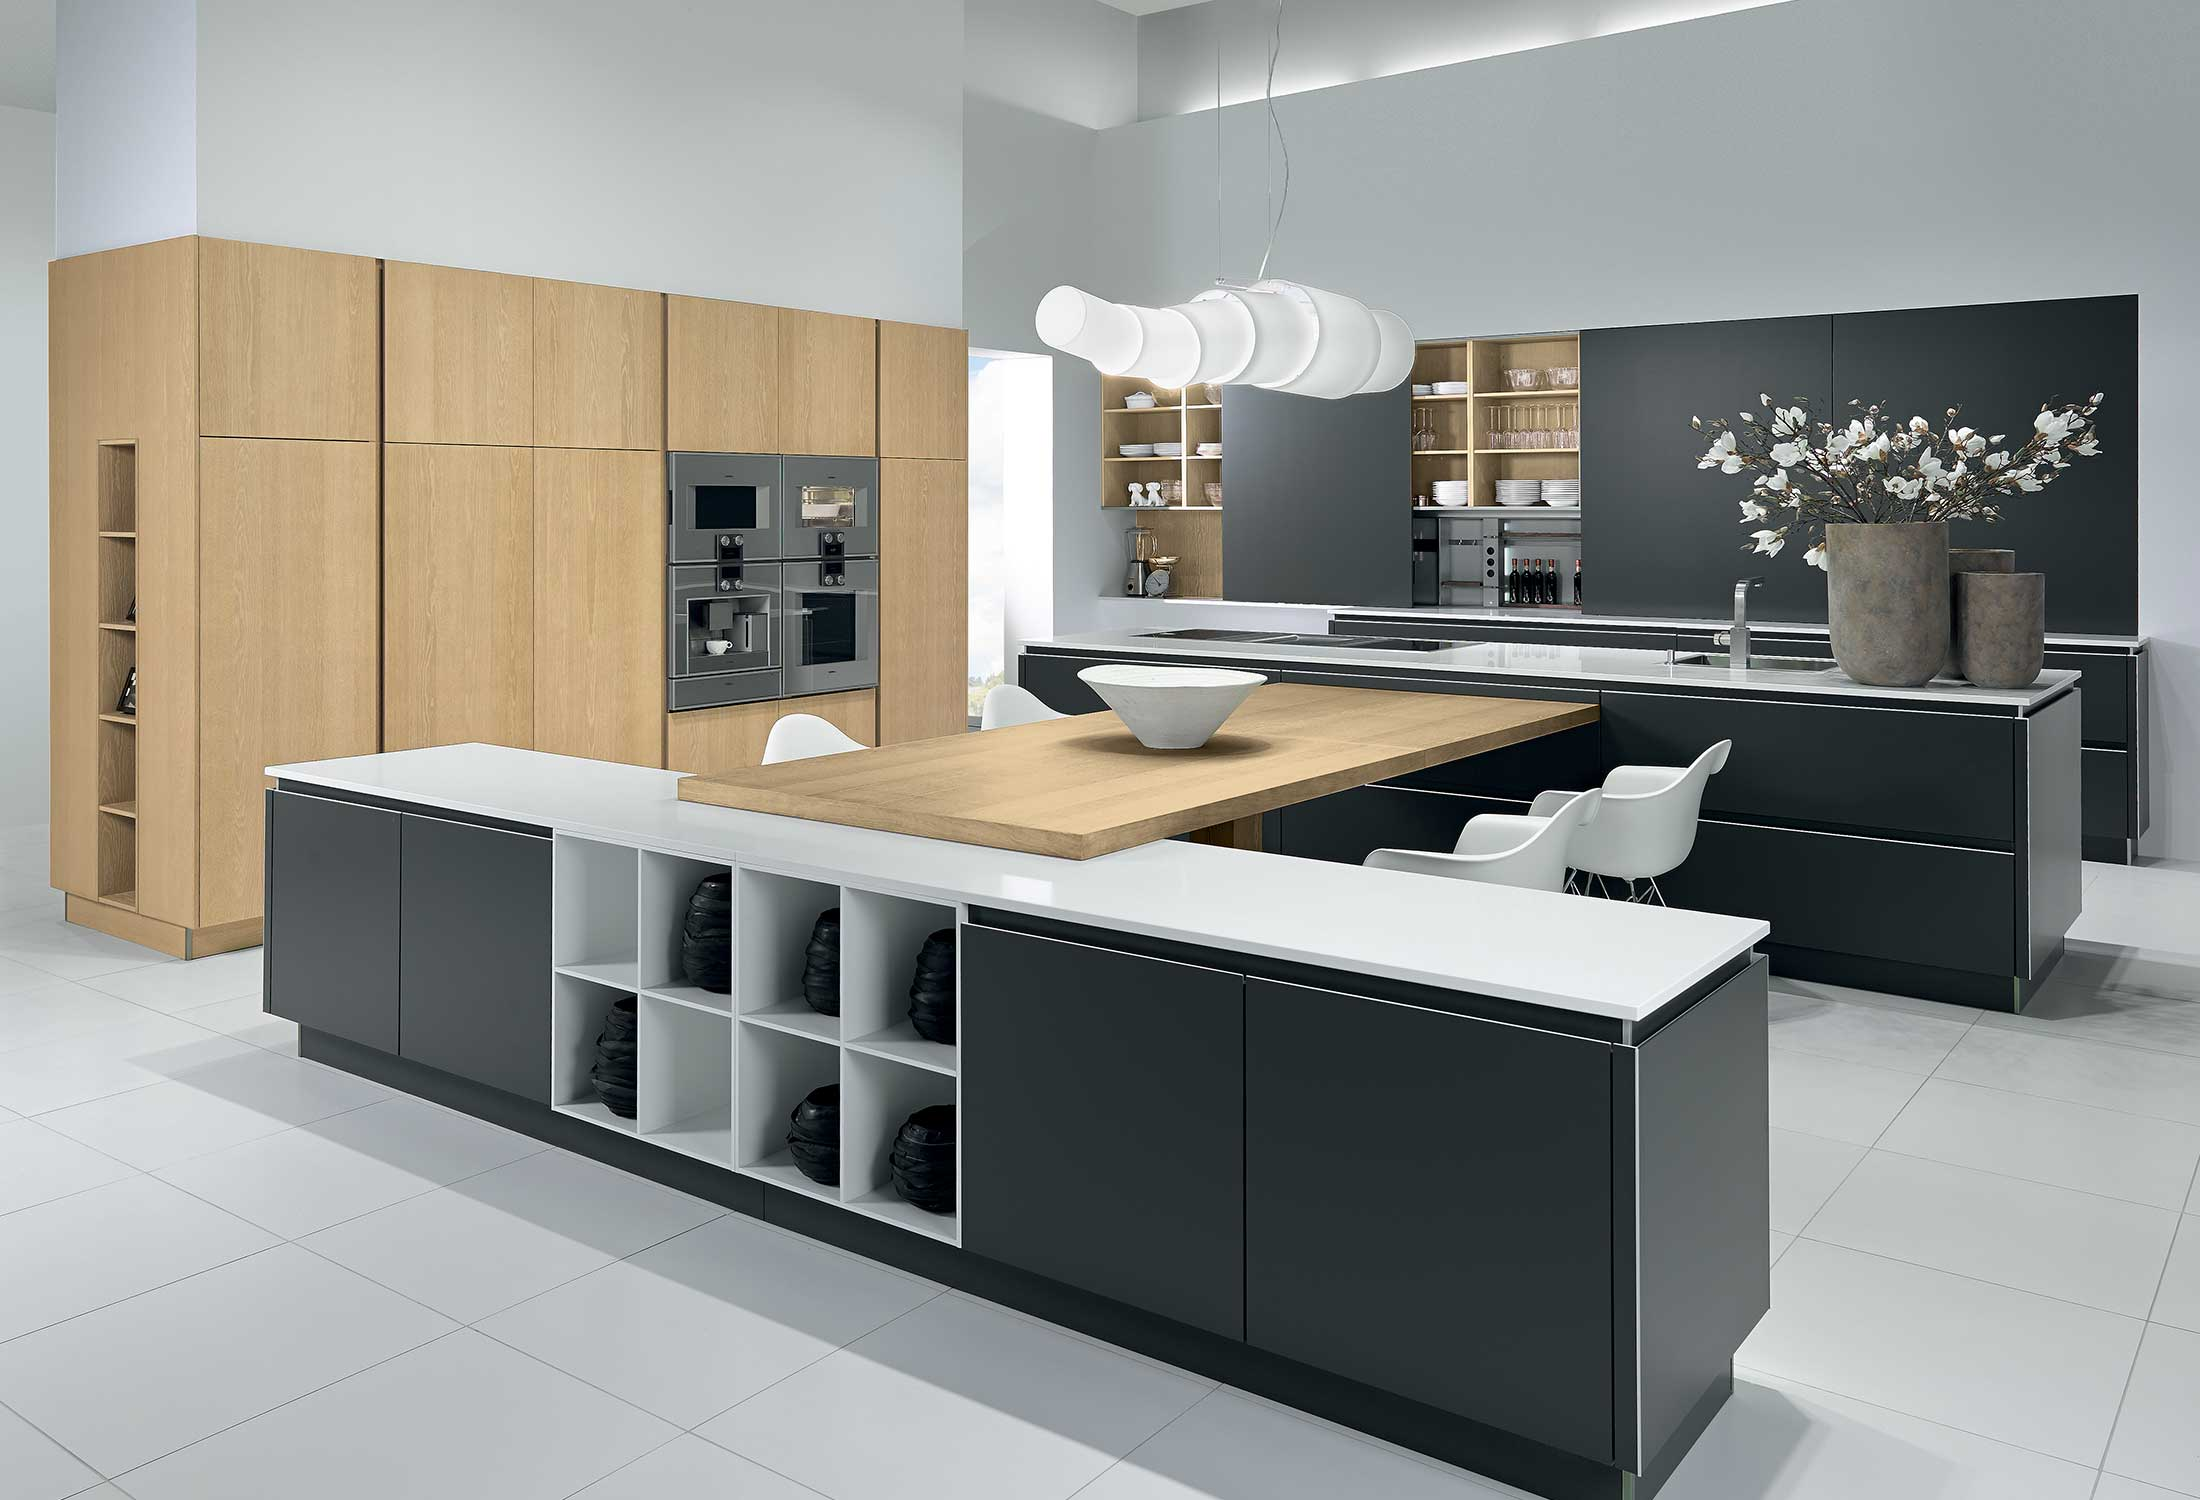 New kitchens Sidcup and Orpington kitchens